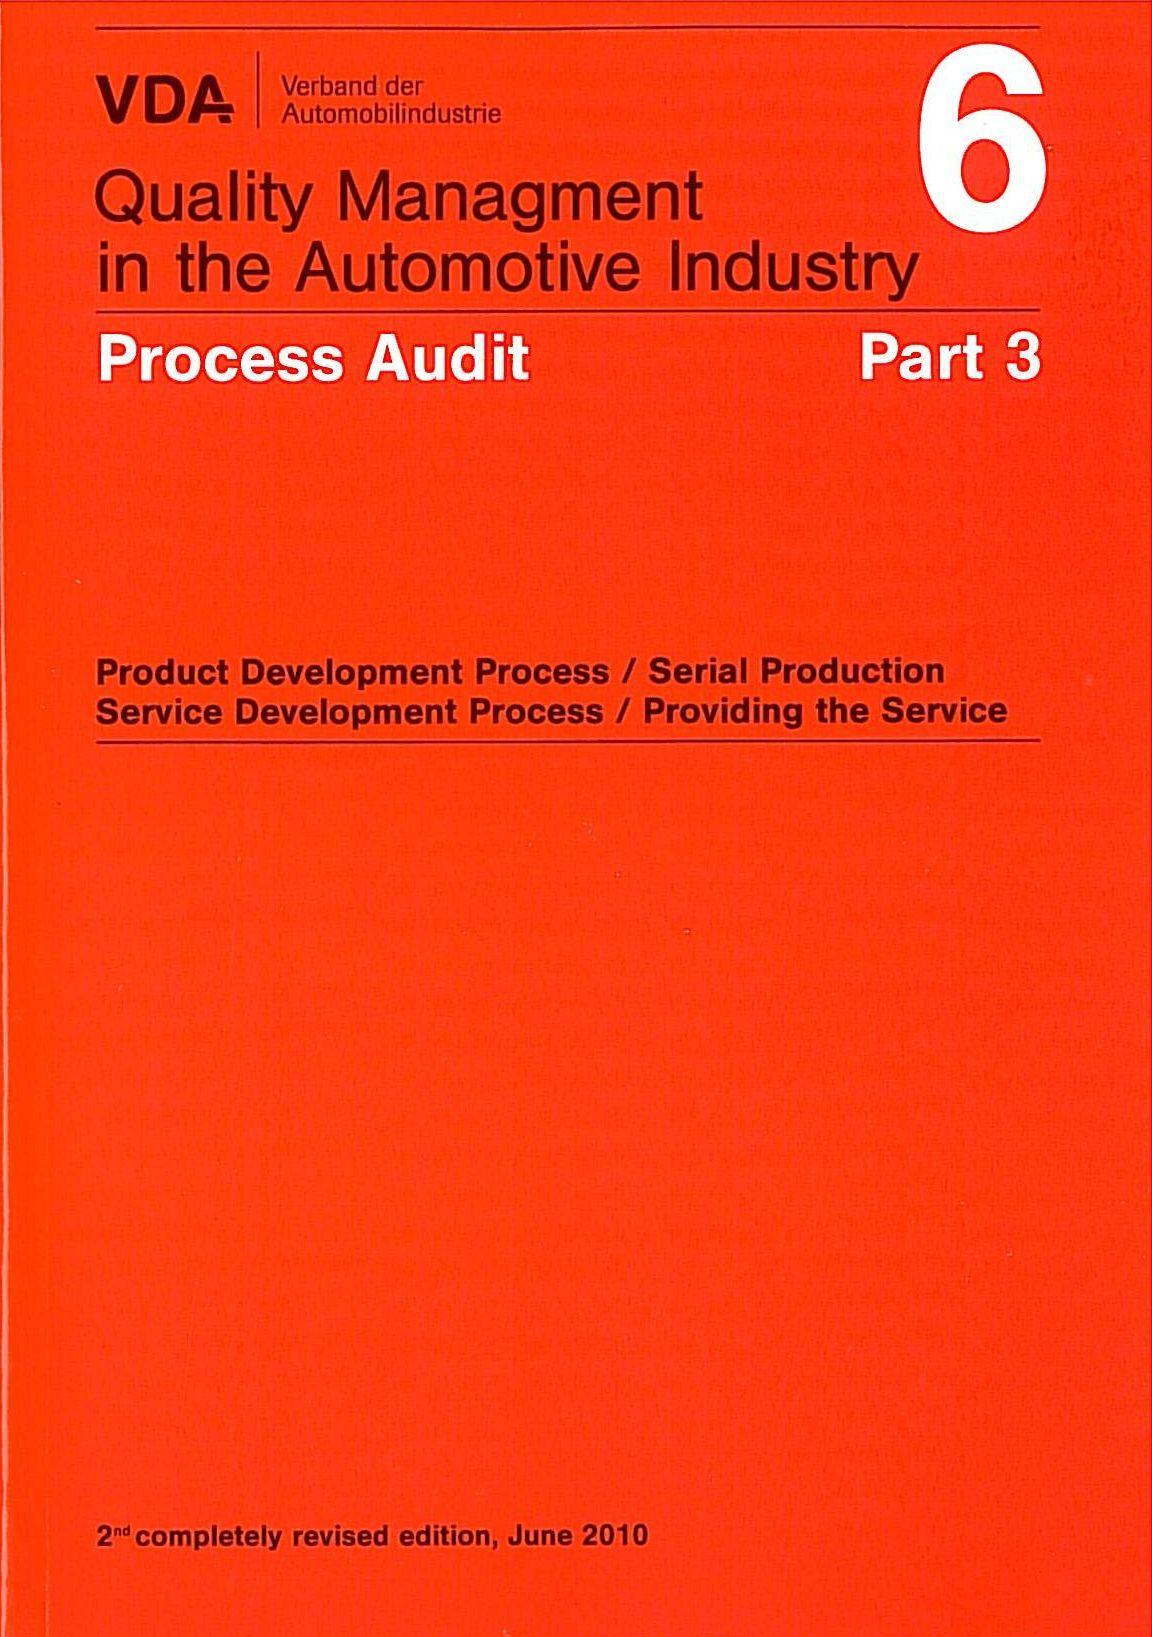 VDA Volume 6 Part 3 : Process Audit, 2nd Completely Revised Edition